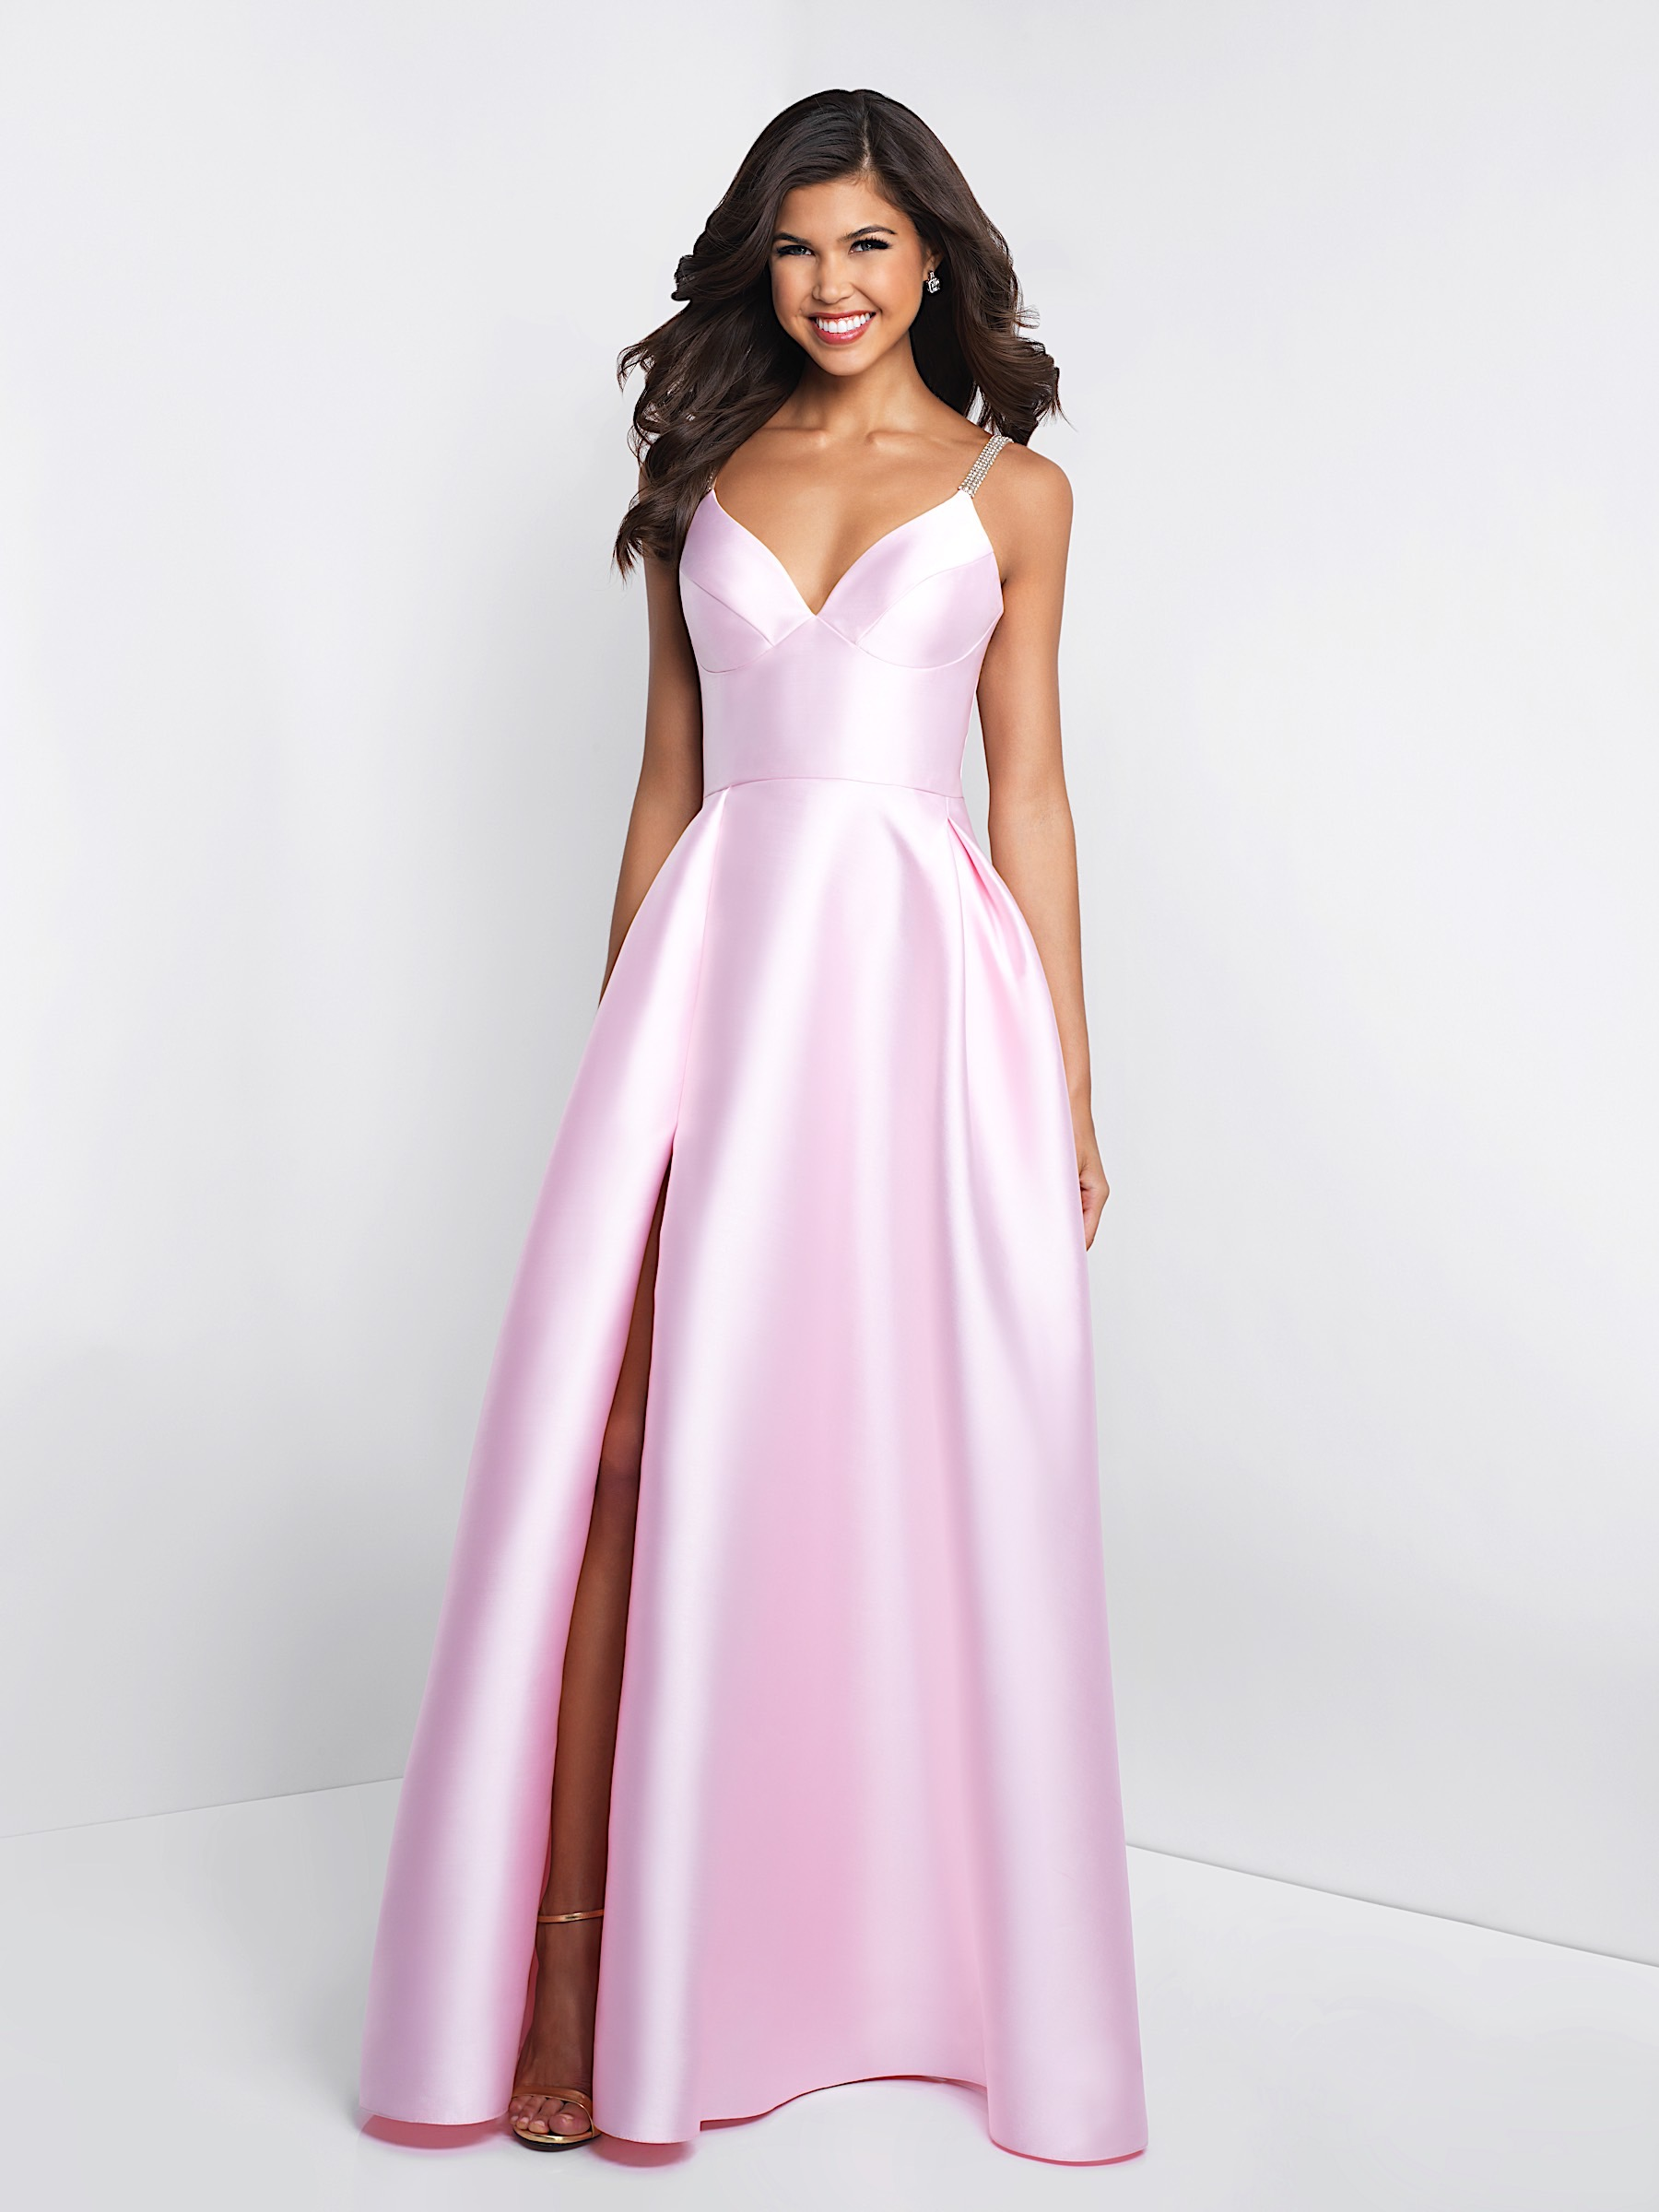 FORMAL DRESS STYLE FC1044 - The Bridal Company